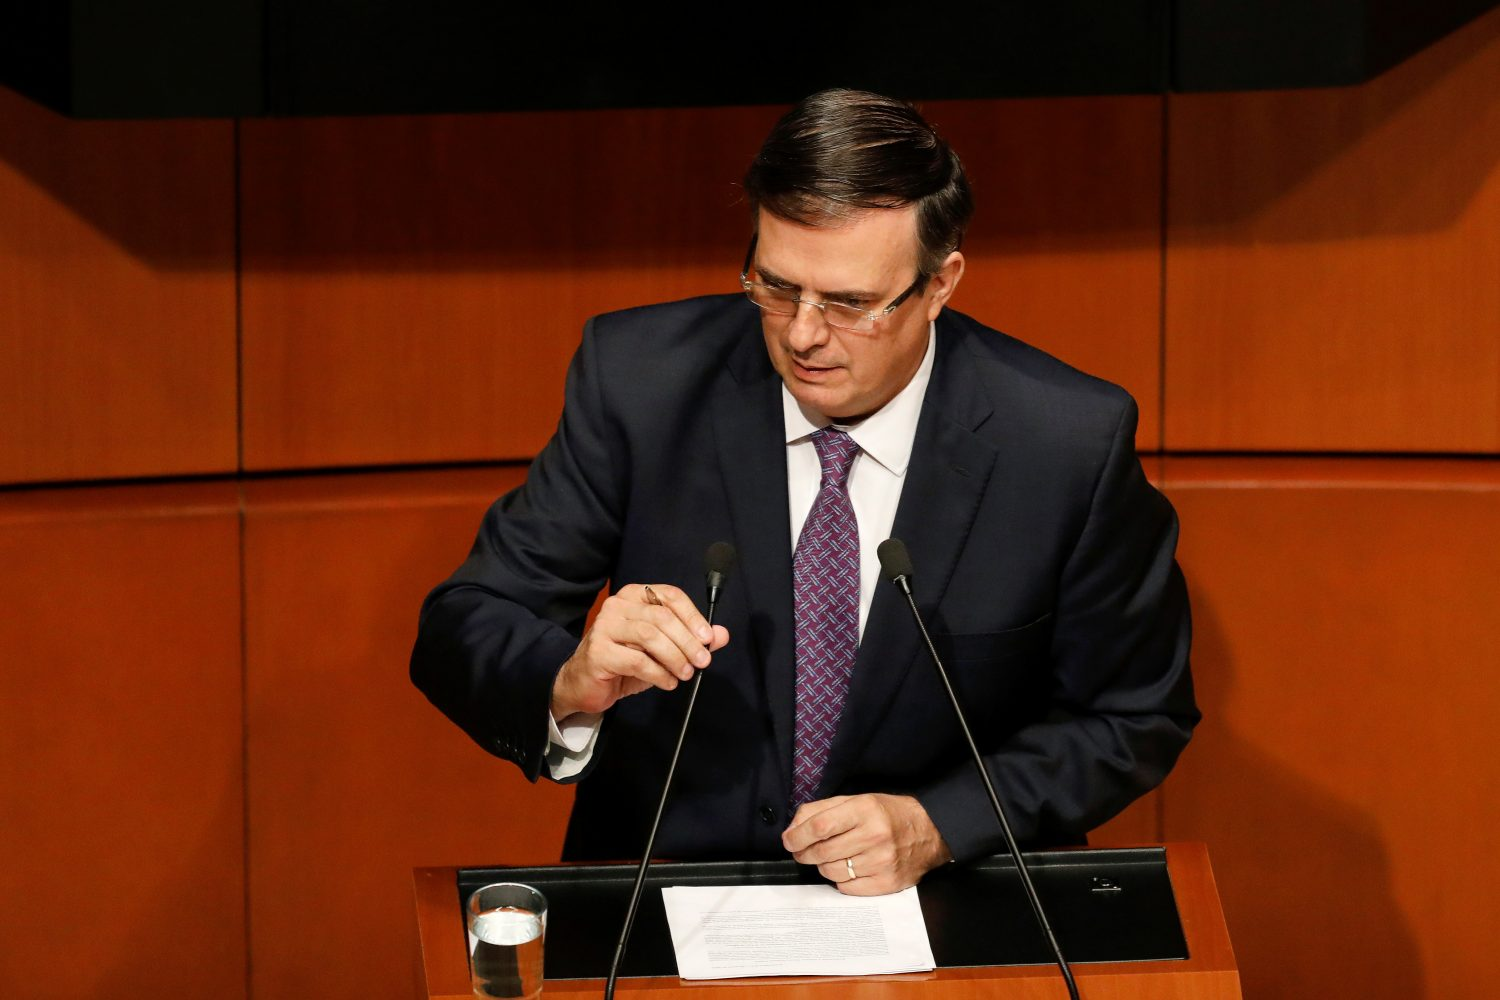 FILE PHOTO - Mexico's Foreign Minister Marcelo Ebrard speaks during a session with senators and lawmakers at the Senate building in Mexico City, Mexico June 14, 2019. REUTERS/Carlos Jasso